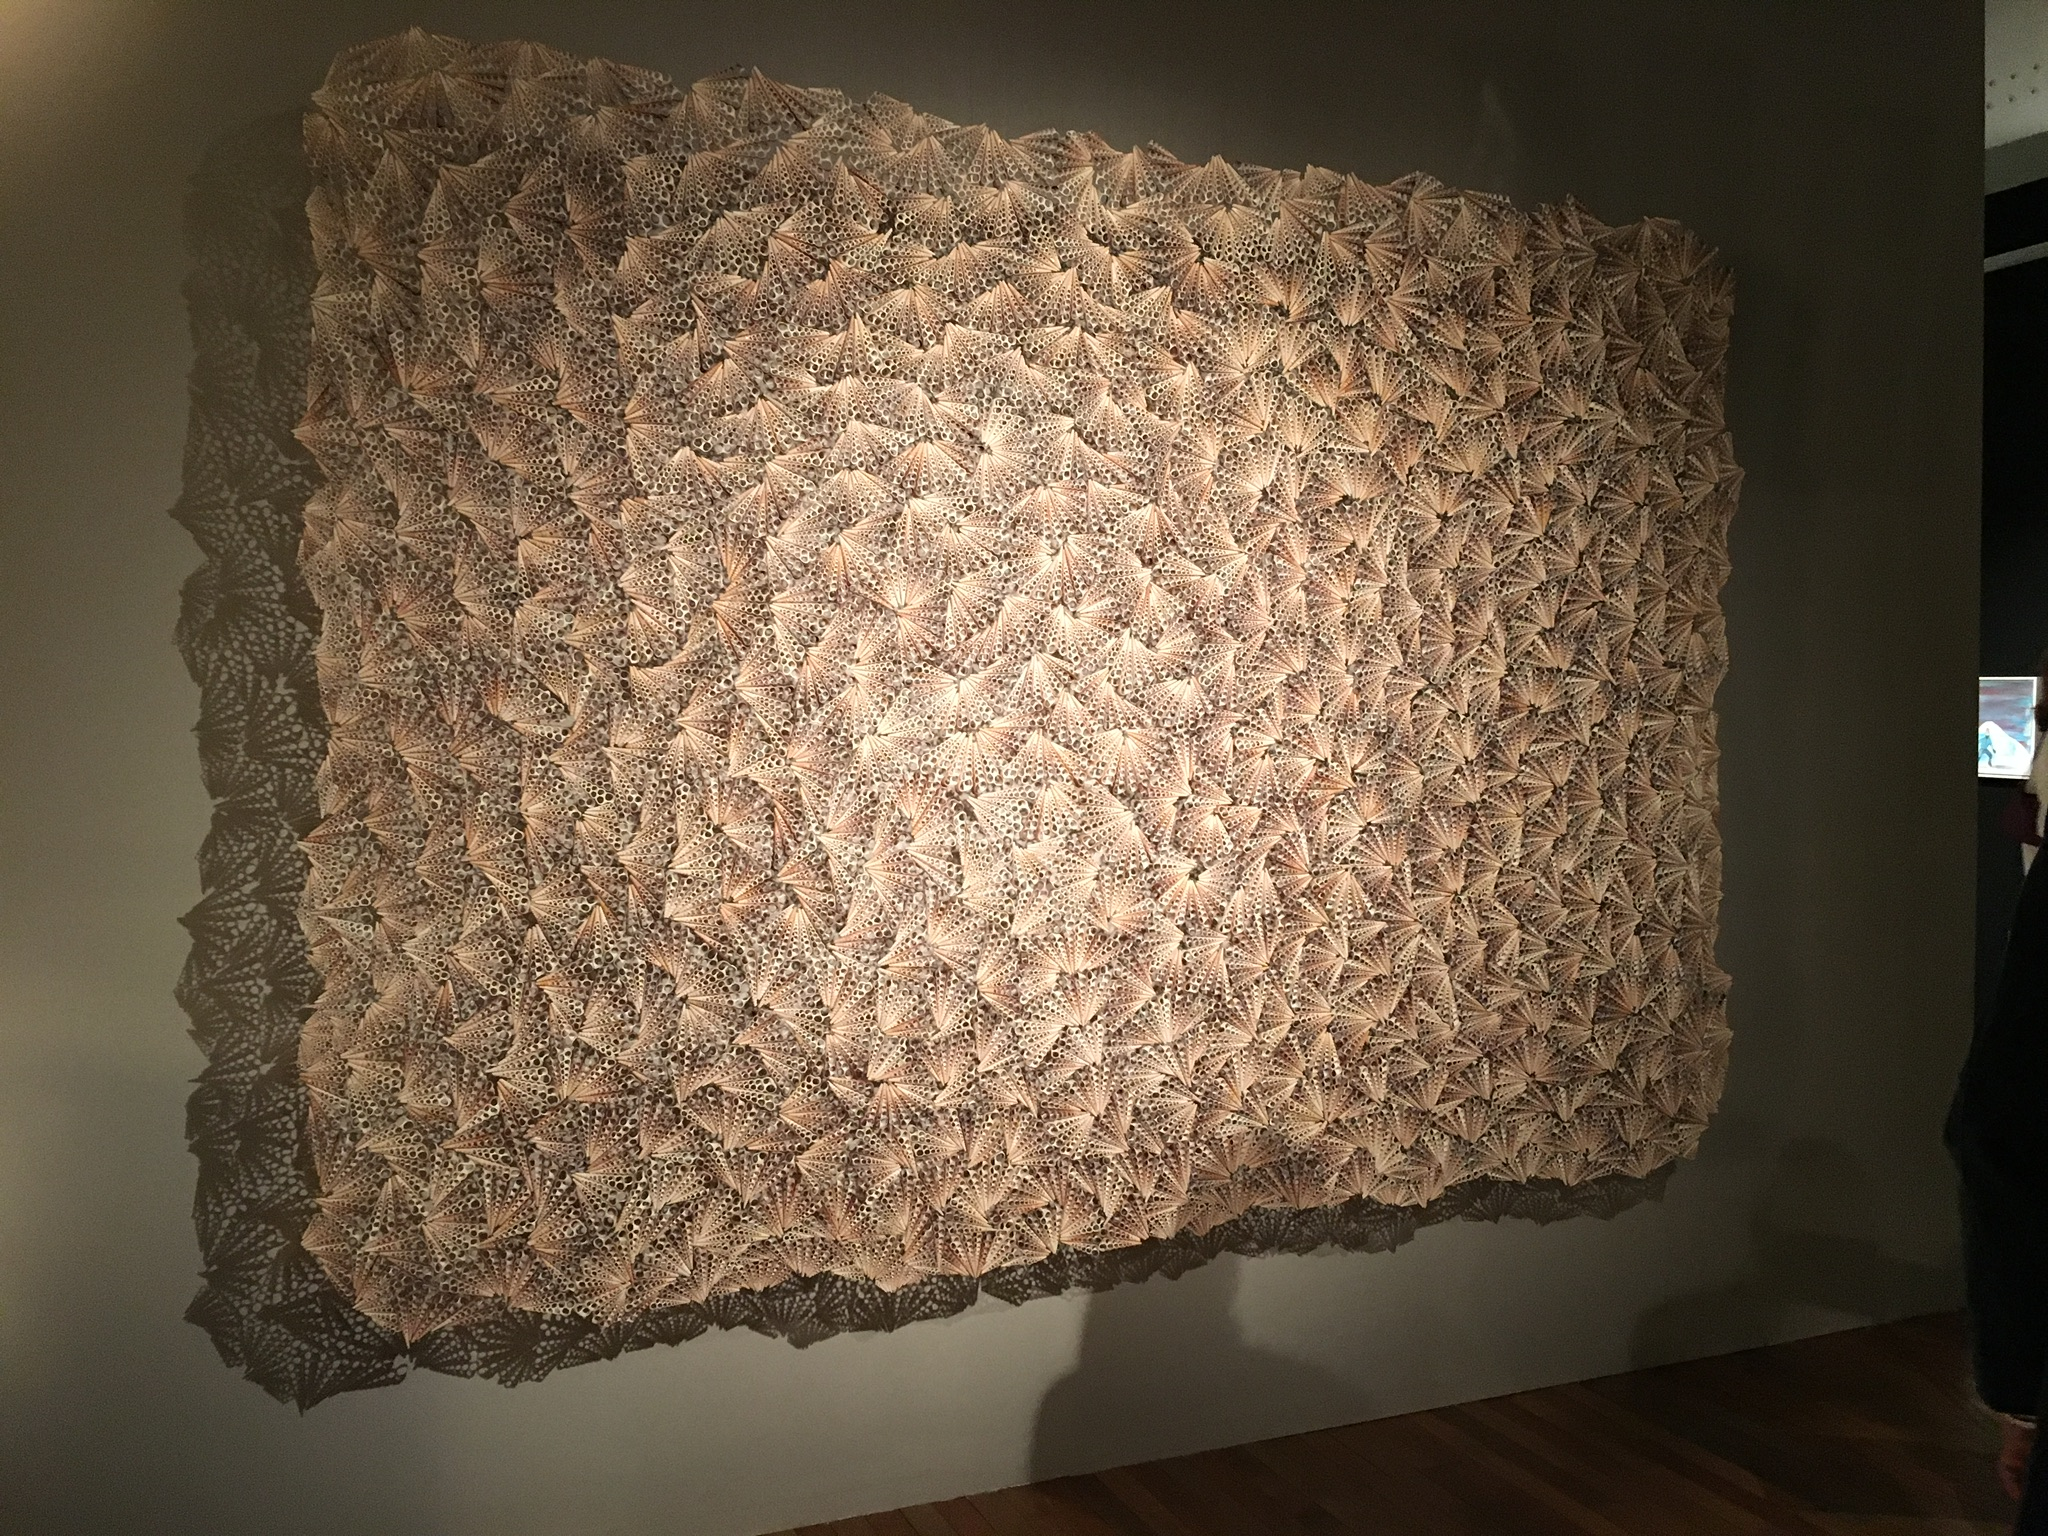 """""""Dreamcatcher"""" by Rowan Mersh (3metres x 2 metres) - £72,000 inc VAT on the stand of A24 Gallery Fumi (Sardinia, Italy). Made from 'farmed' Turritella shells from the Phillippines"""